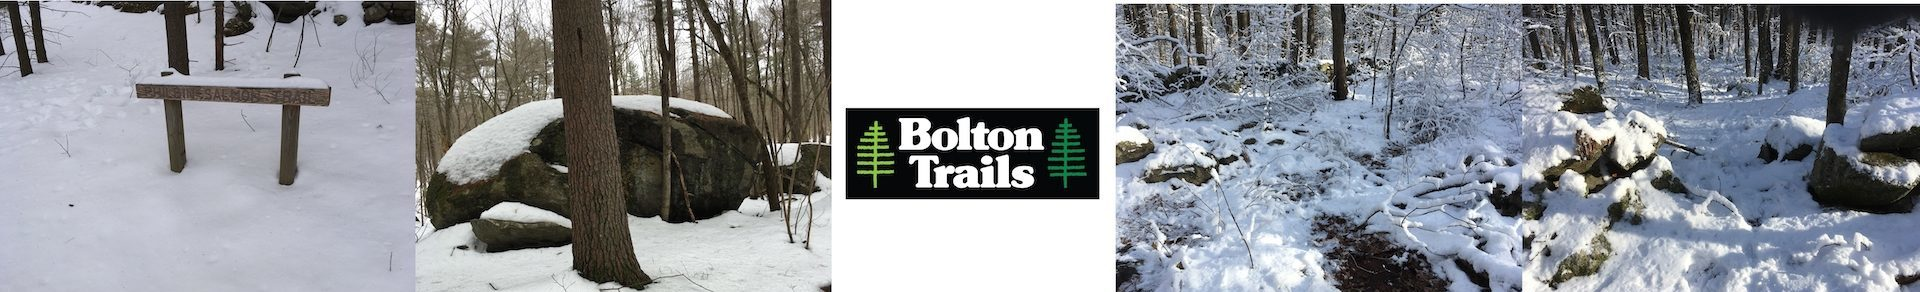 Bolton Trails